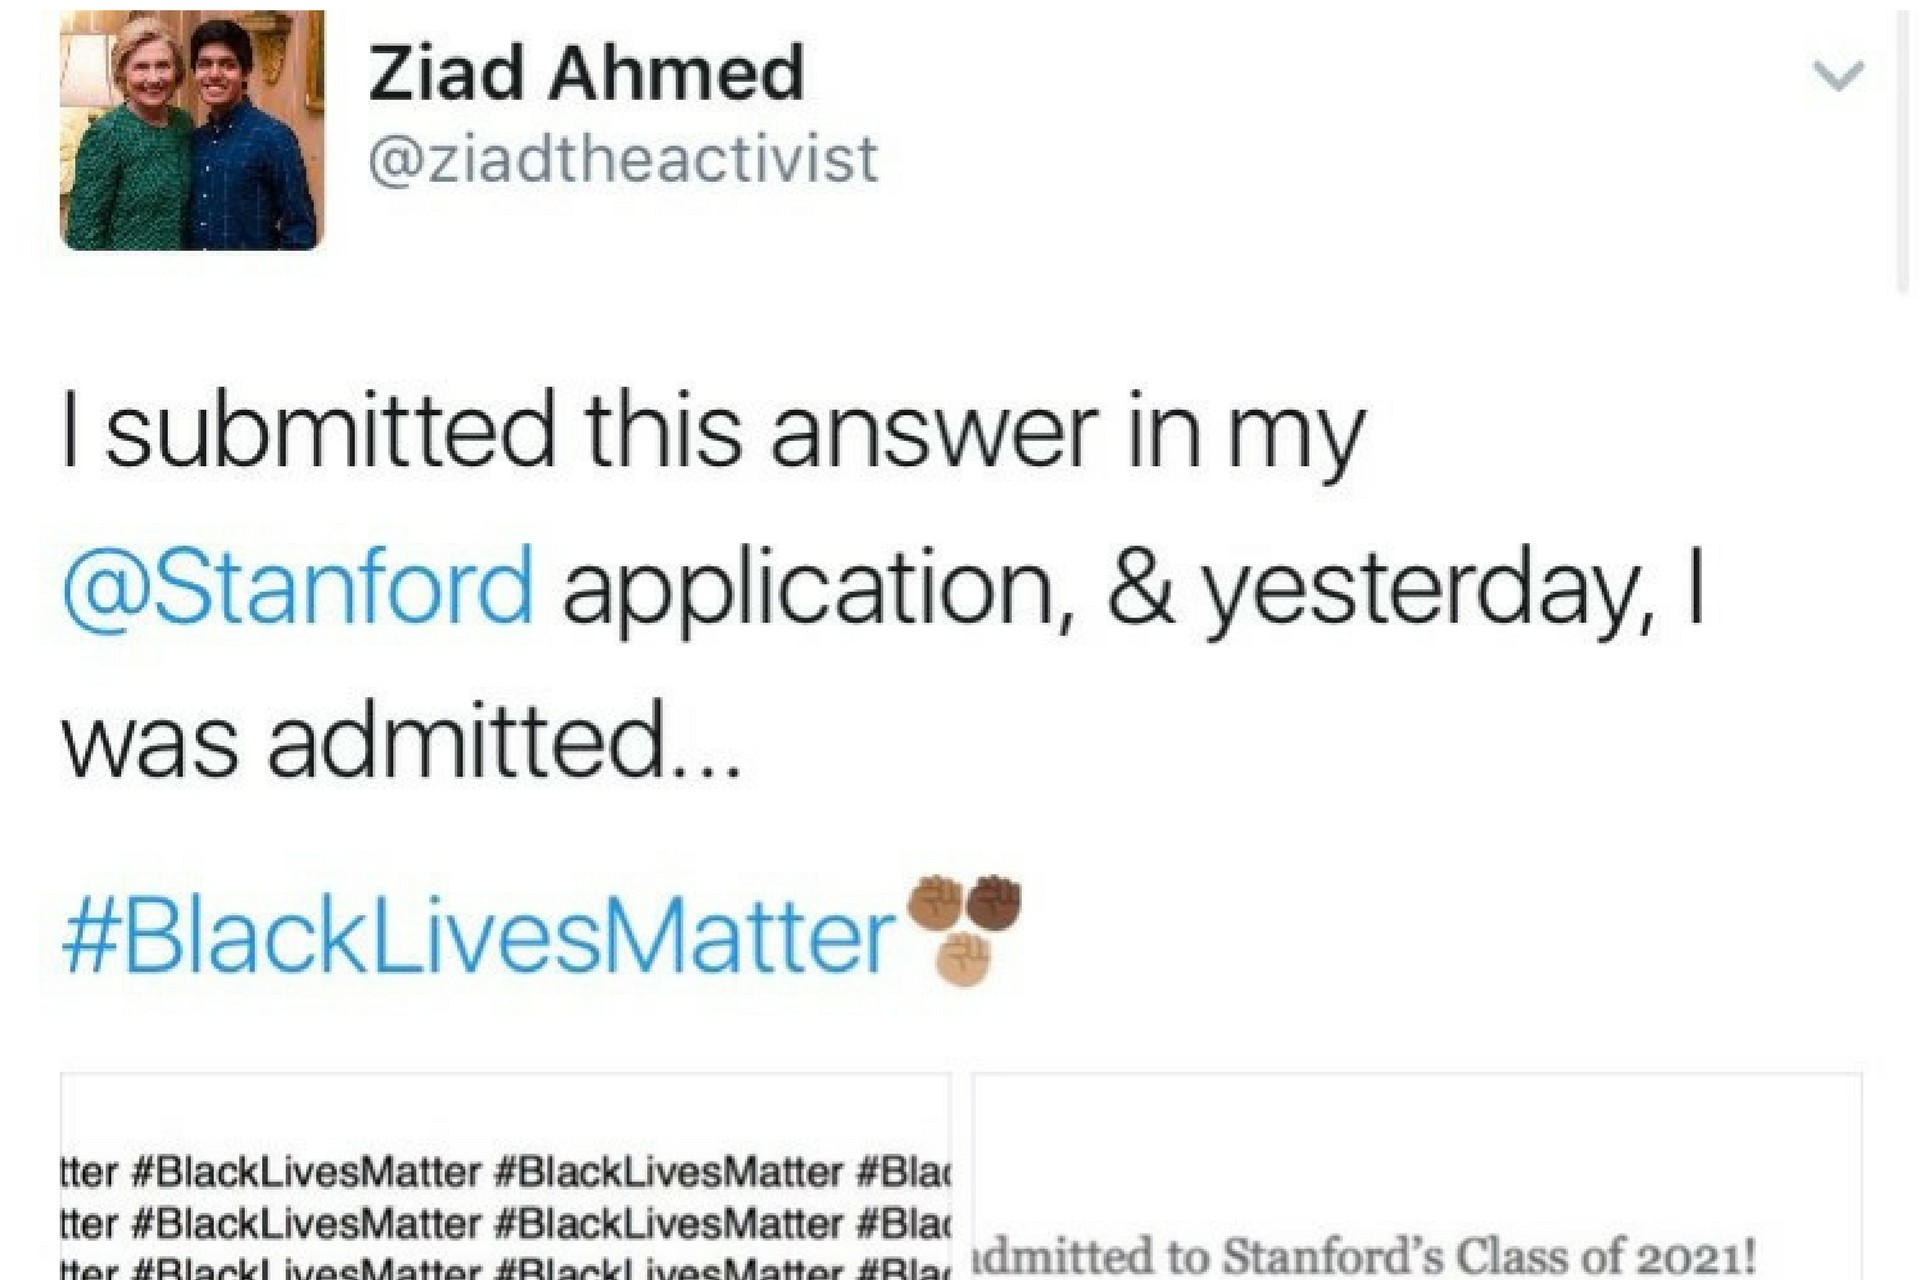 003 Essay Example Stanford Black Lives Matter Ziad Ahmed Wrote Blacklivesmatter Times On His College Untitled Desi Admission Awful 1920